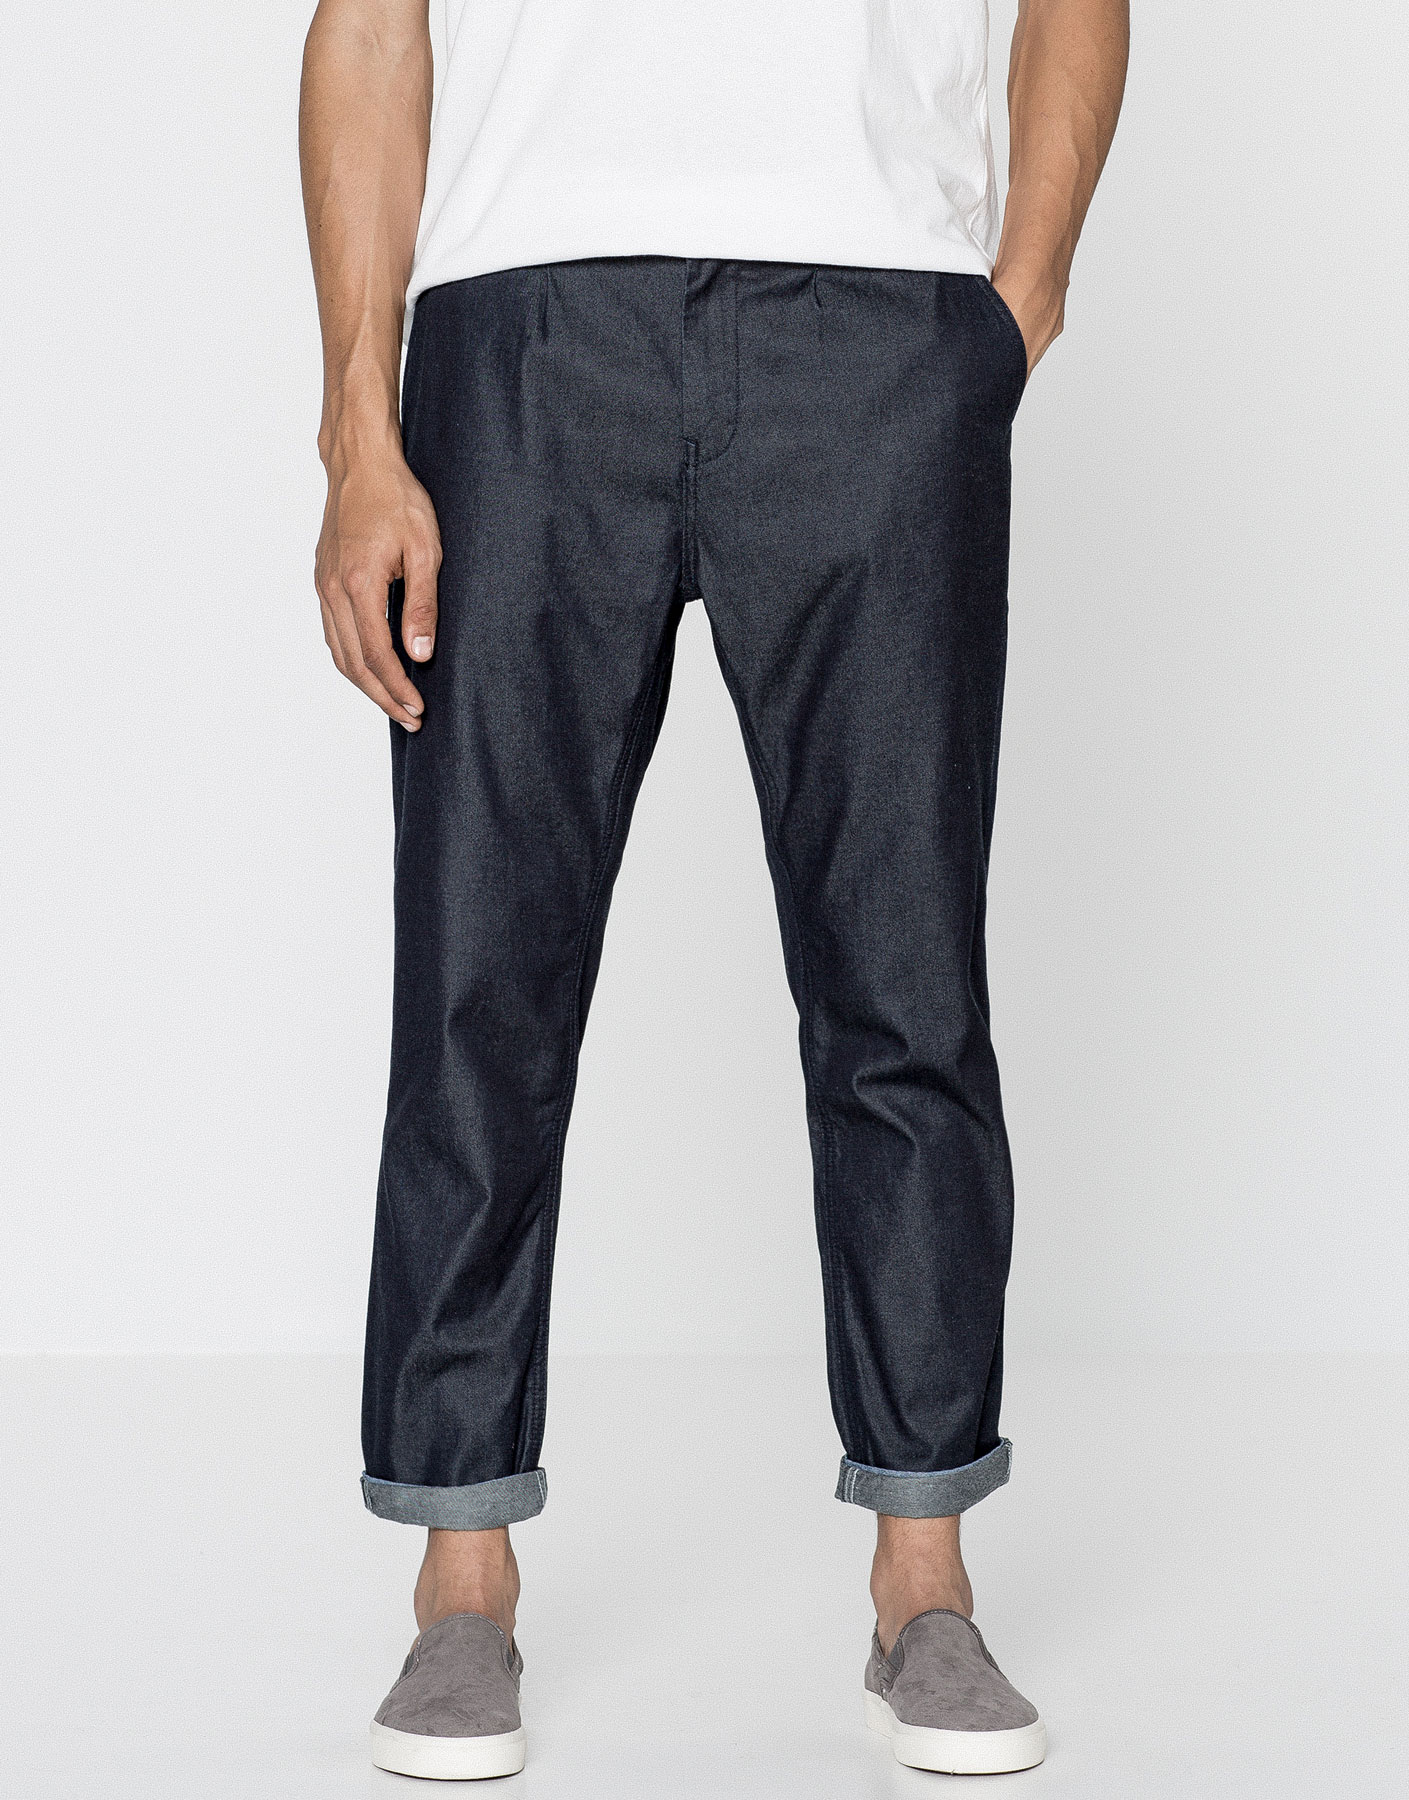 Chino-style jeans